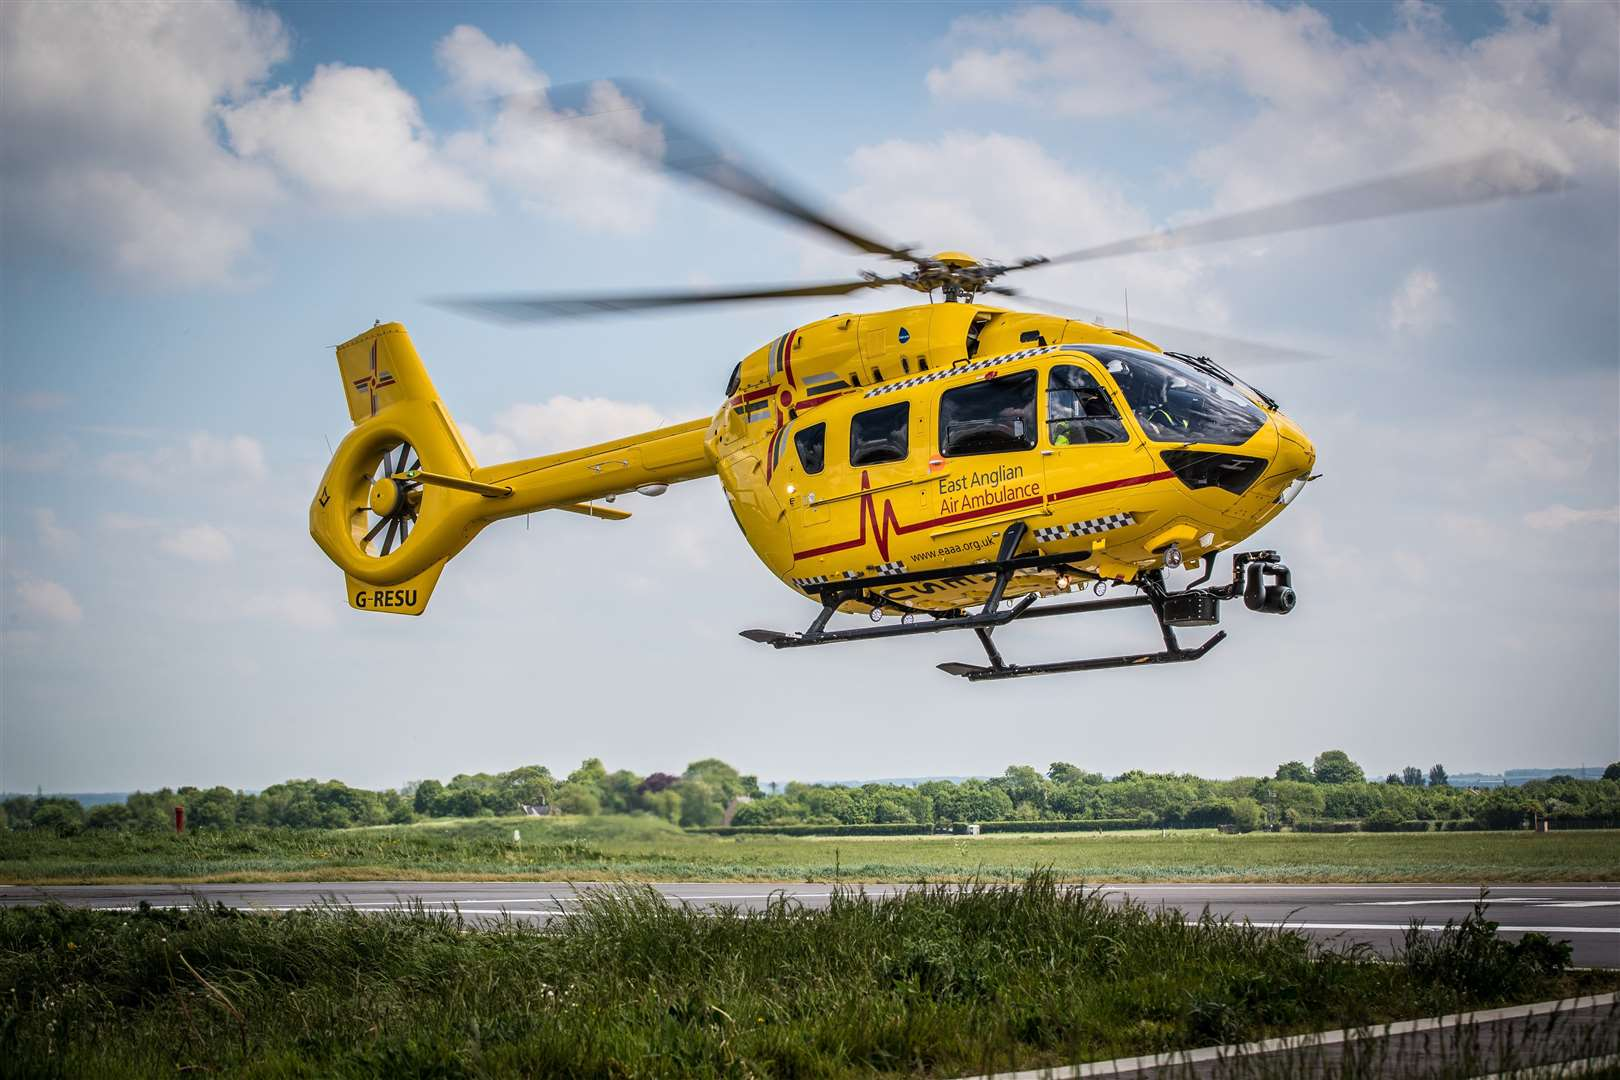 EAAA helicopter in action. Credit Stephen Sparks (46189094)